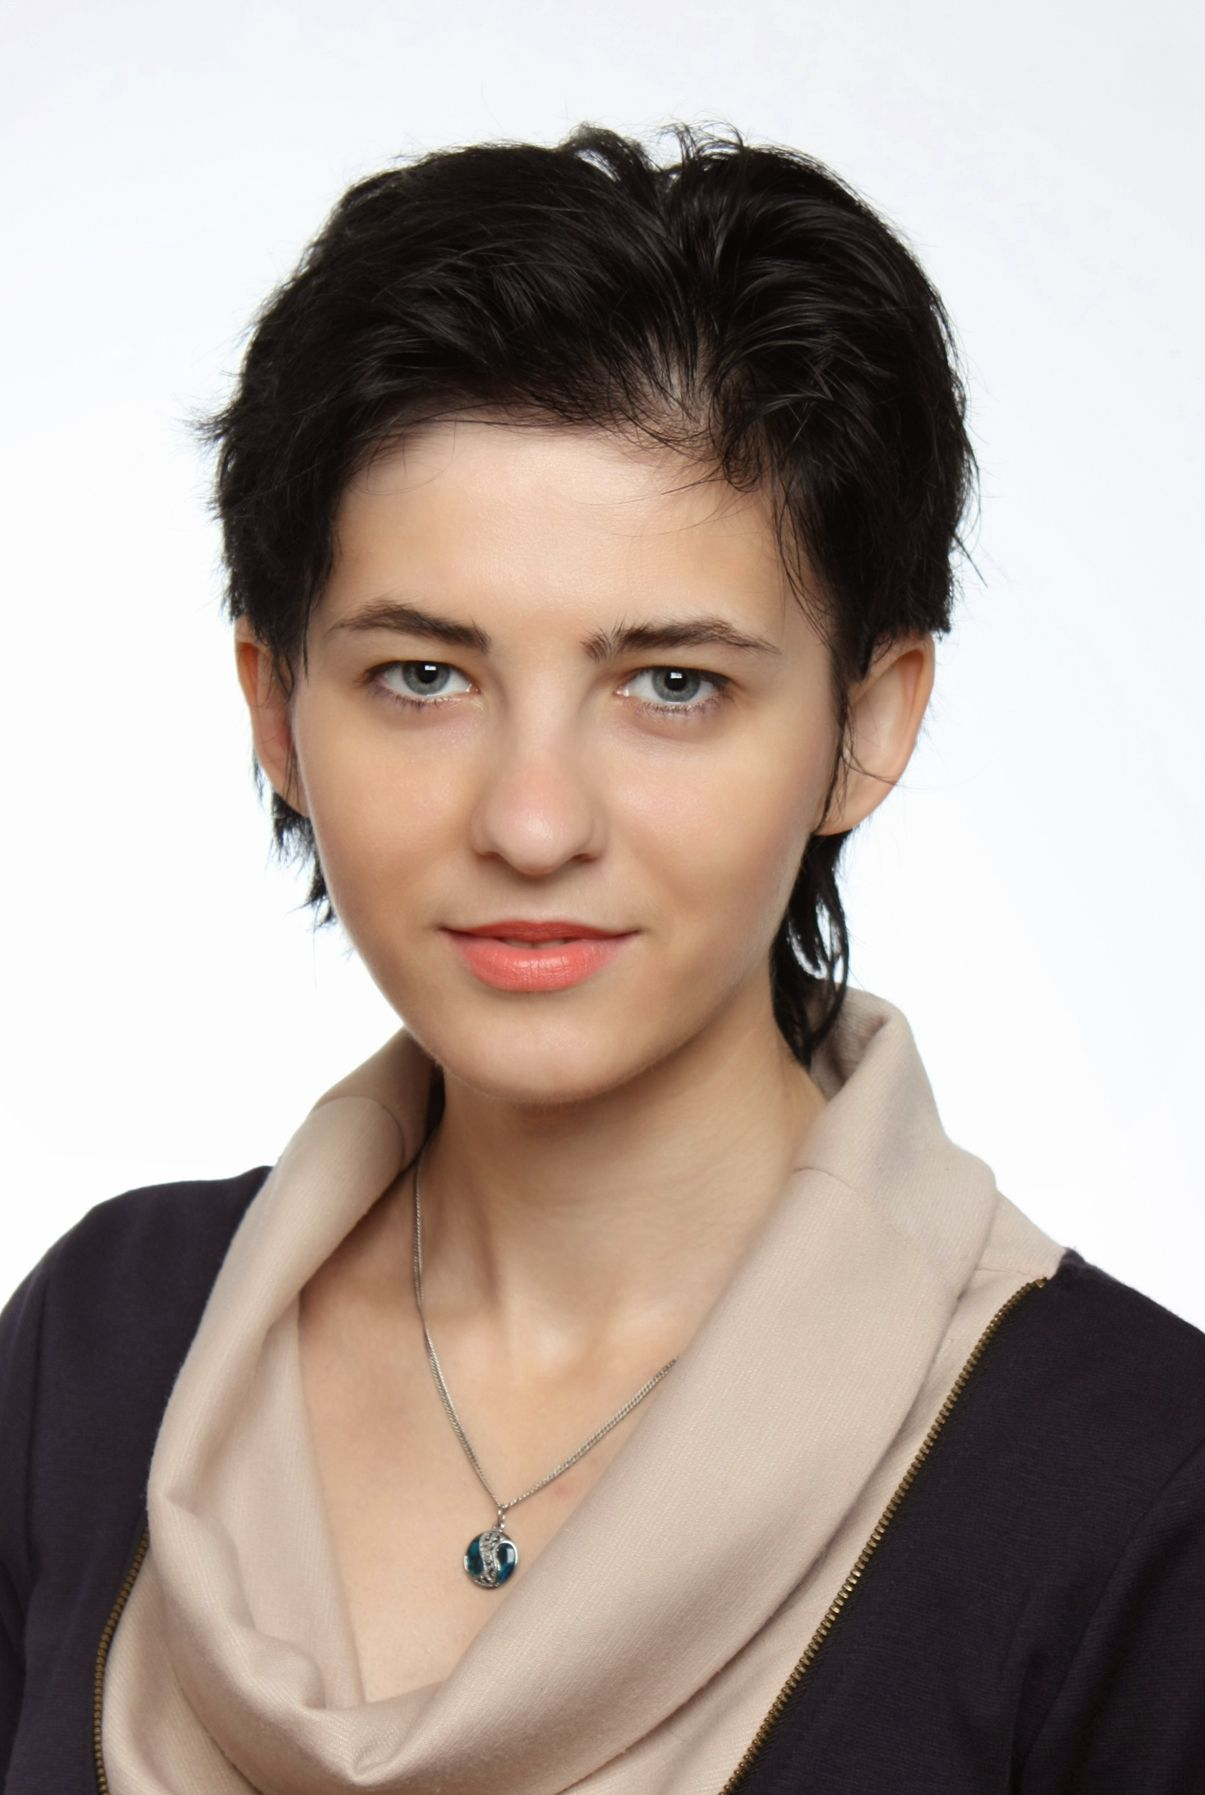 Tatsiana Andruszka, Assistant to the EUSA President